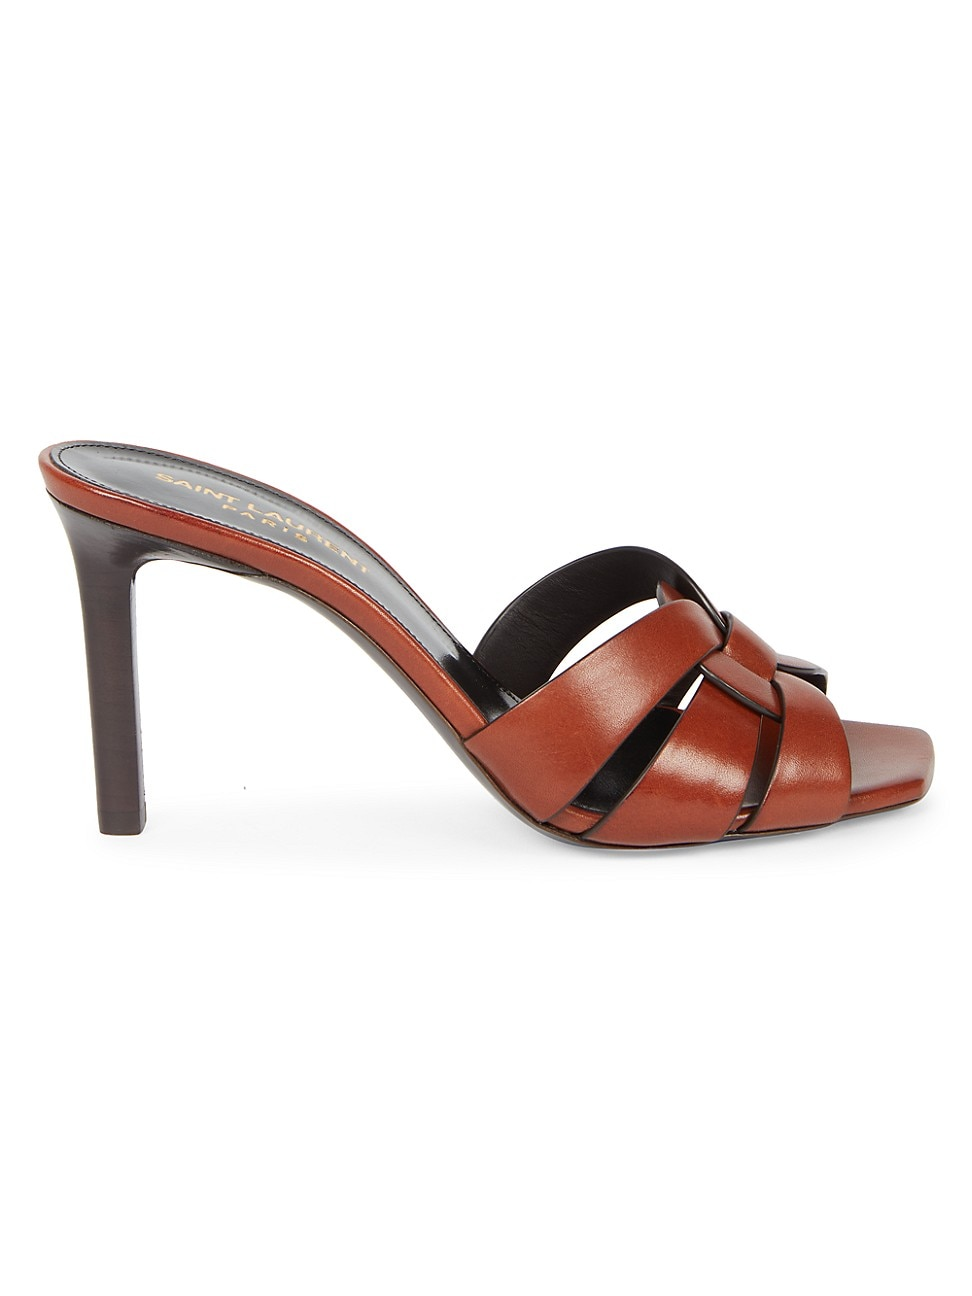 SAINT LAURENT WOMEN'S TRIBUTE LEATHER MULES